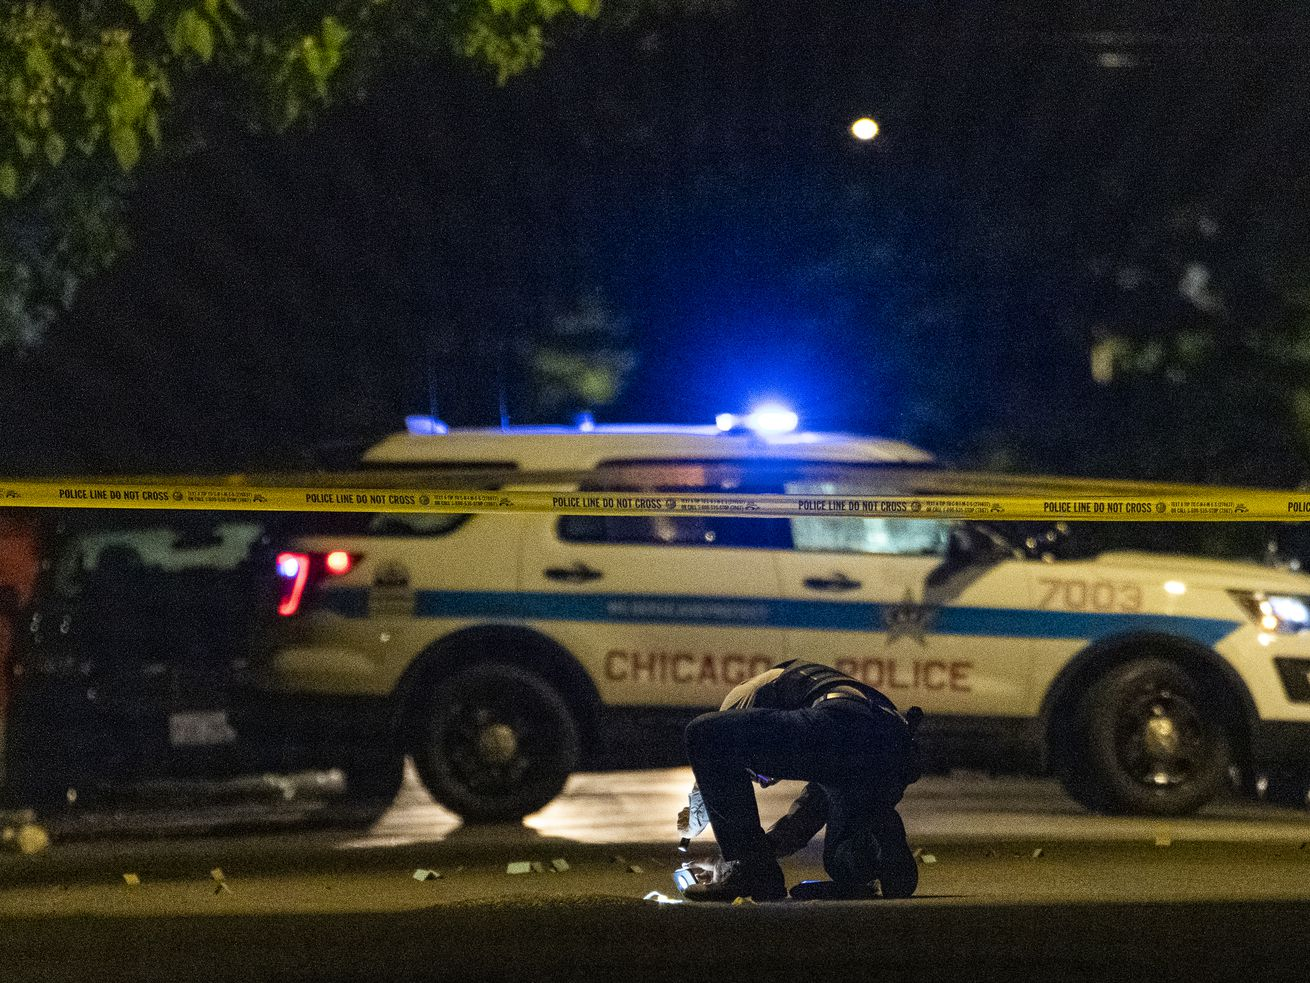 Chicago police work the scene where 27-year-old man was shot and killed in the 5600 block of S. Marshfield Ave, in the West Englewood neighborhood, Friday, June 4, 2021.